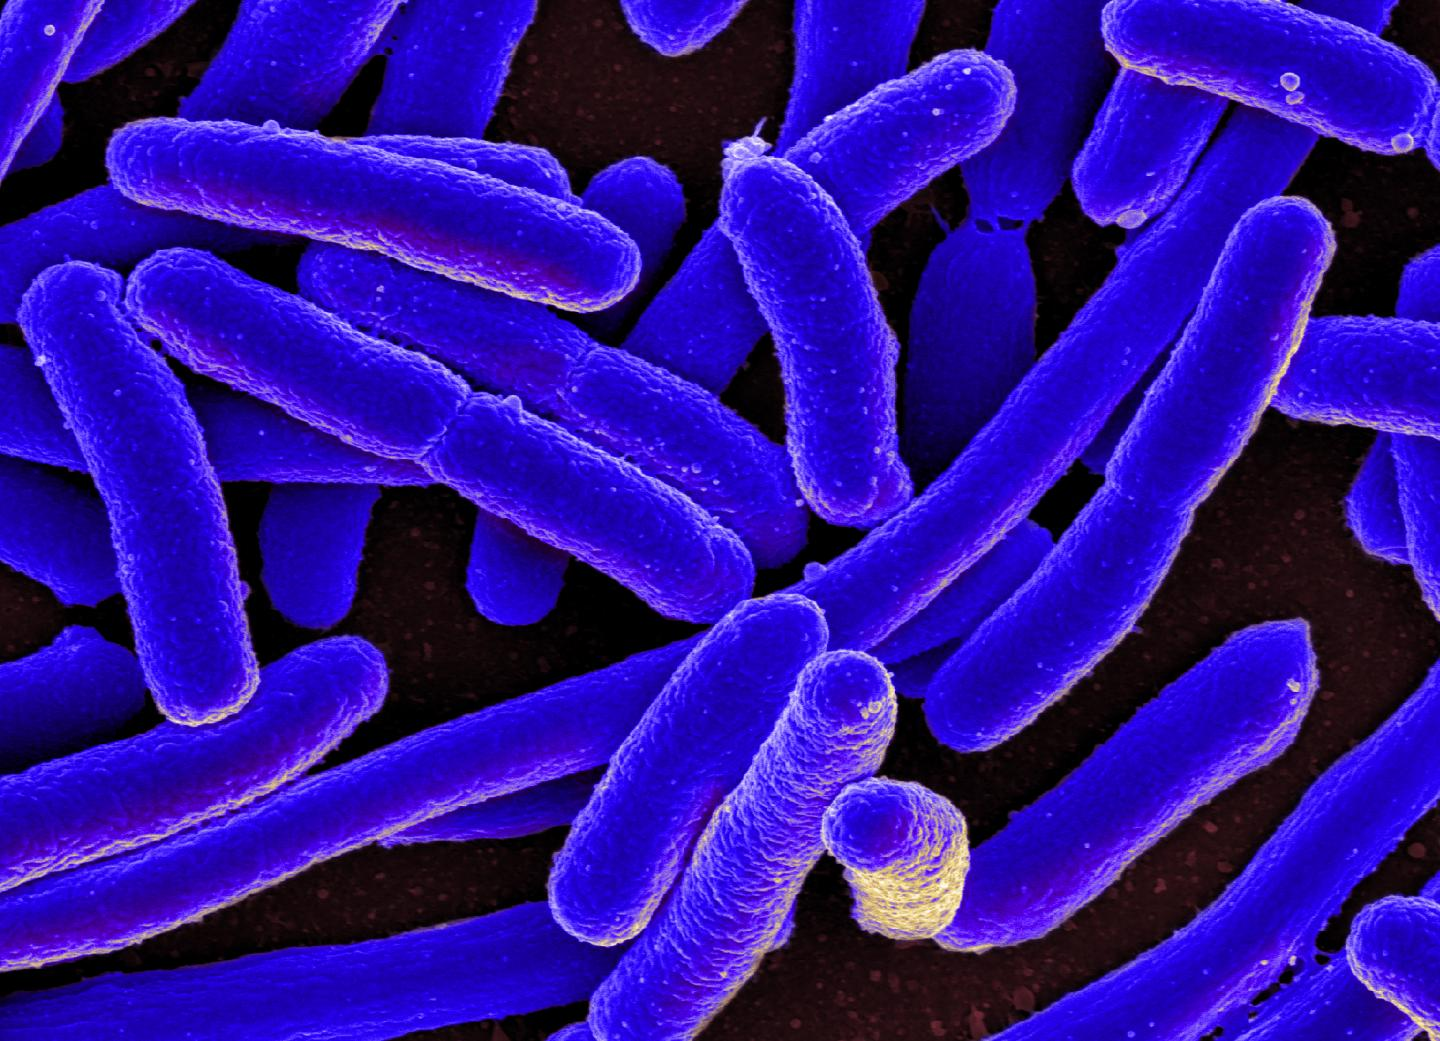 E. coli bacteria was used to study the sequences in DNA where the risk for mutation is significantly elevated. / Credit: National Institute of Allergy and Infectious Diseases